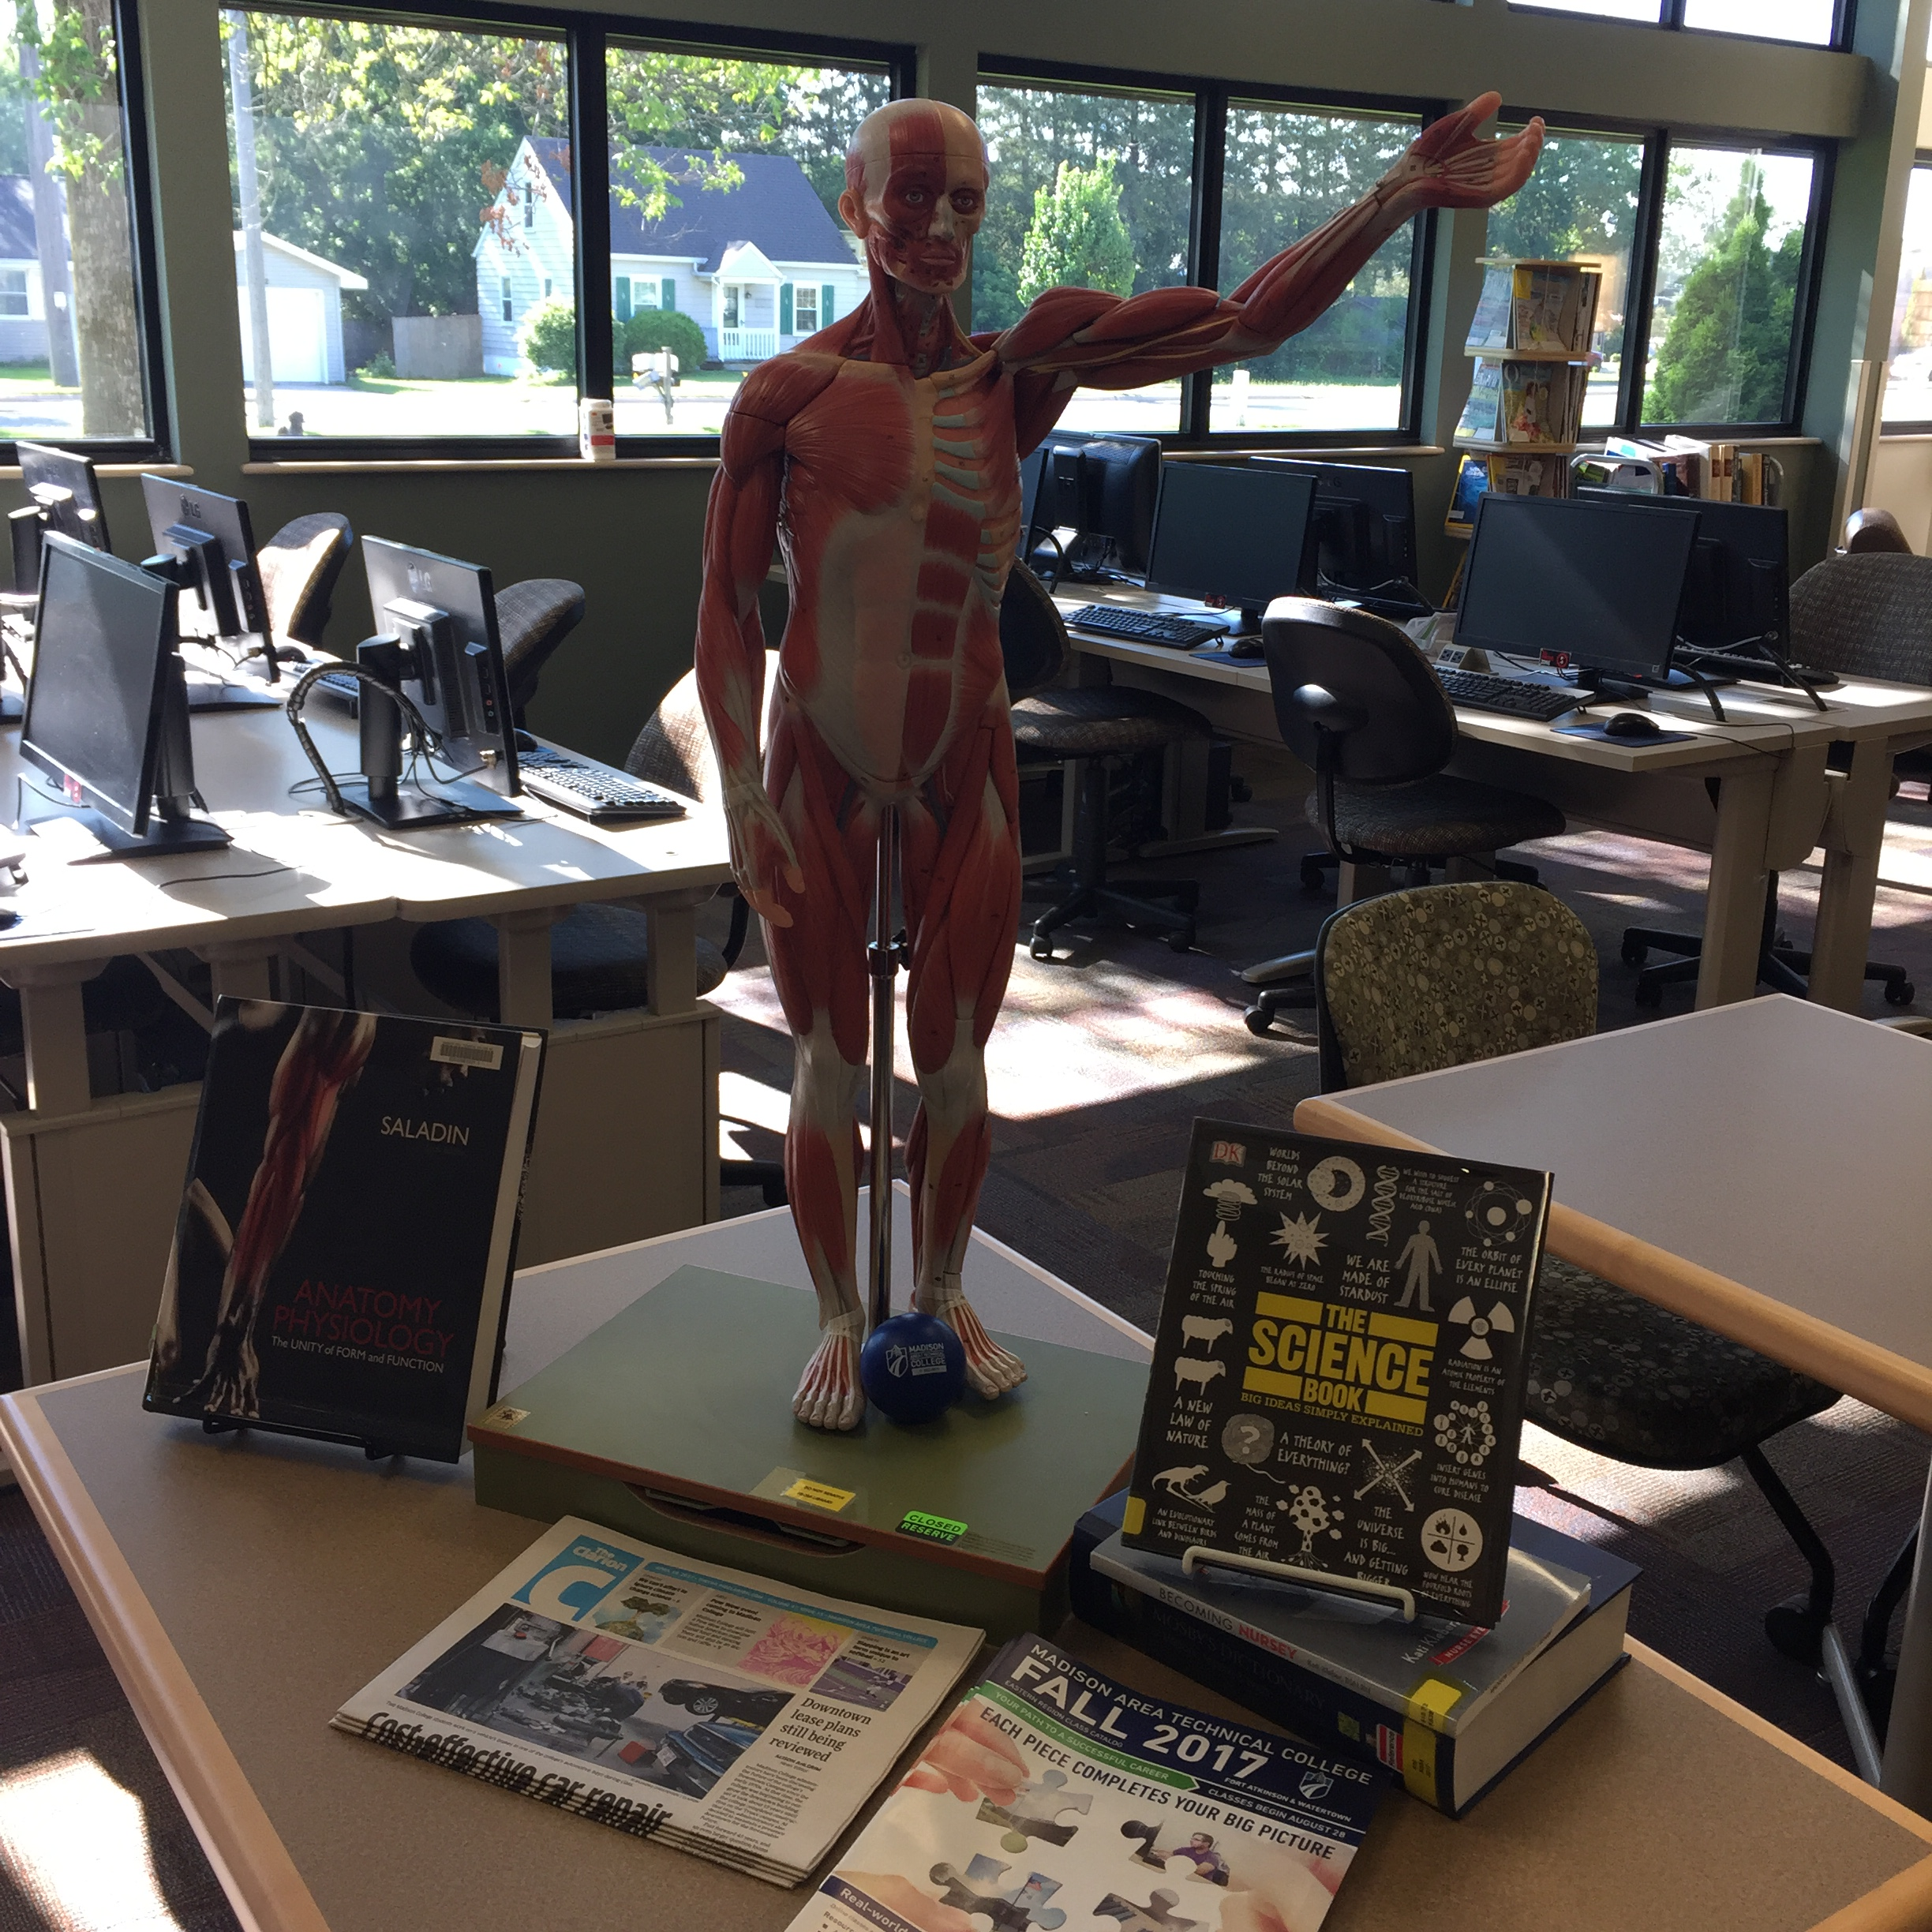 Anatomy model with book display